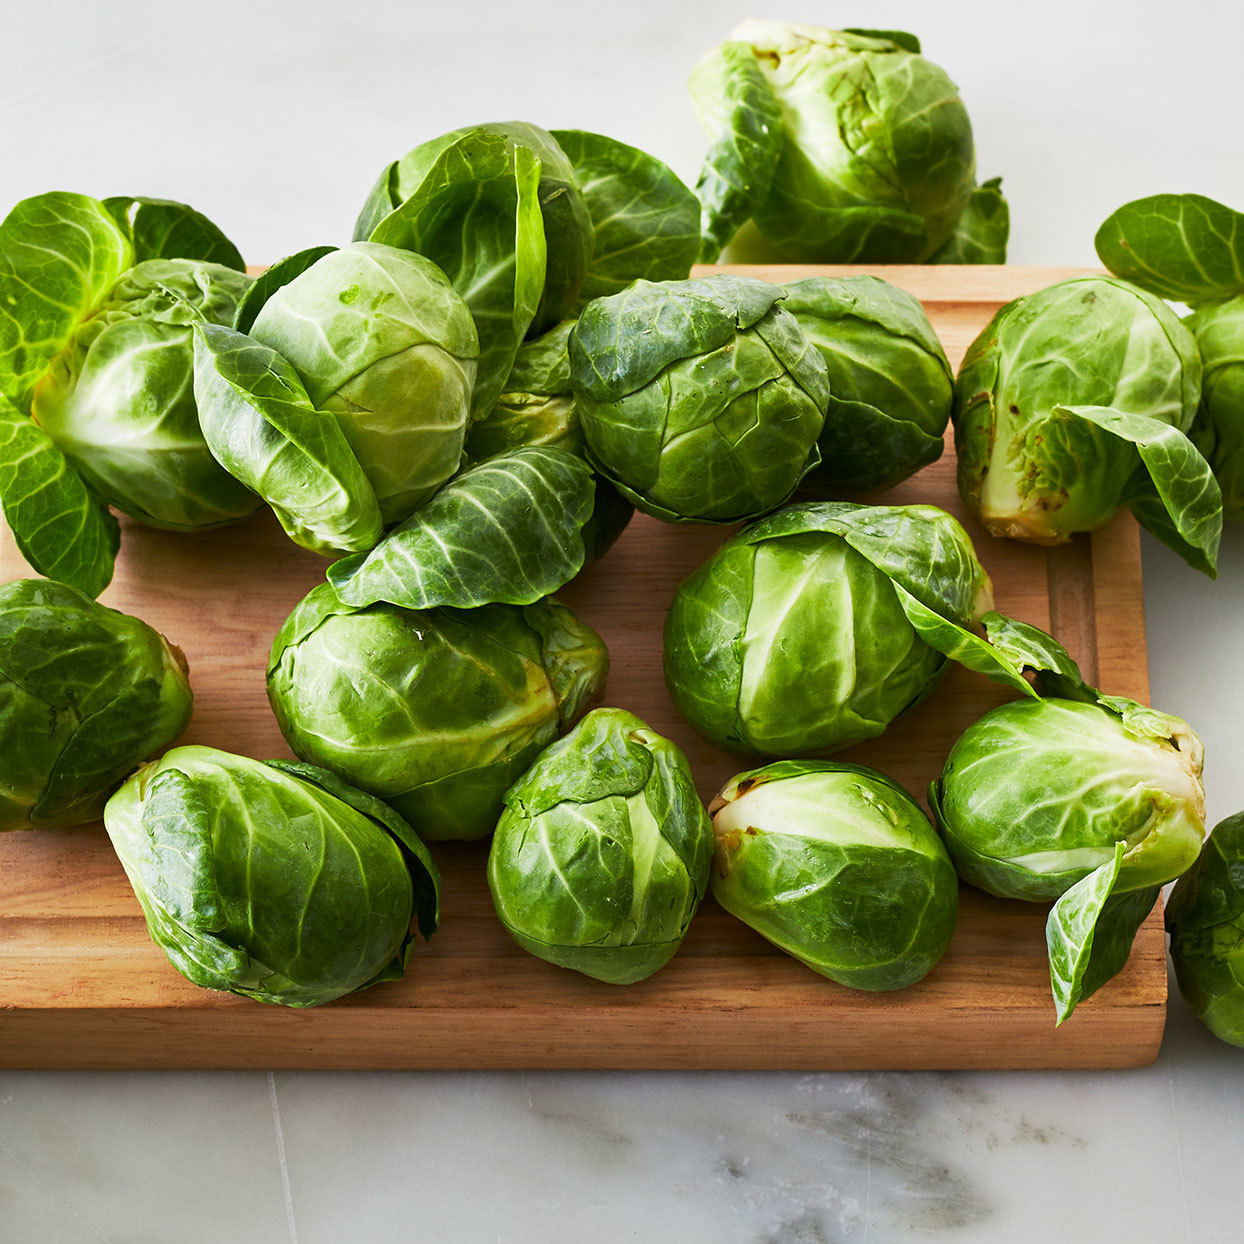 raw brussels sprouts on a cutting board